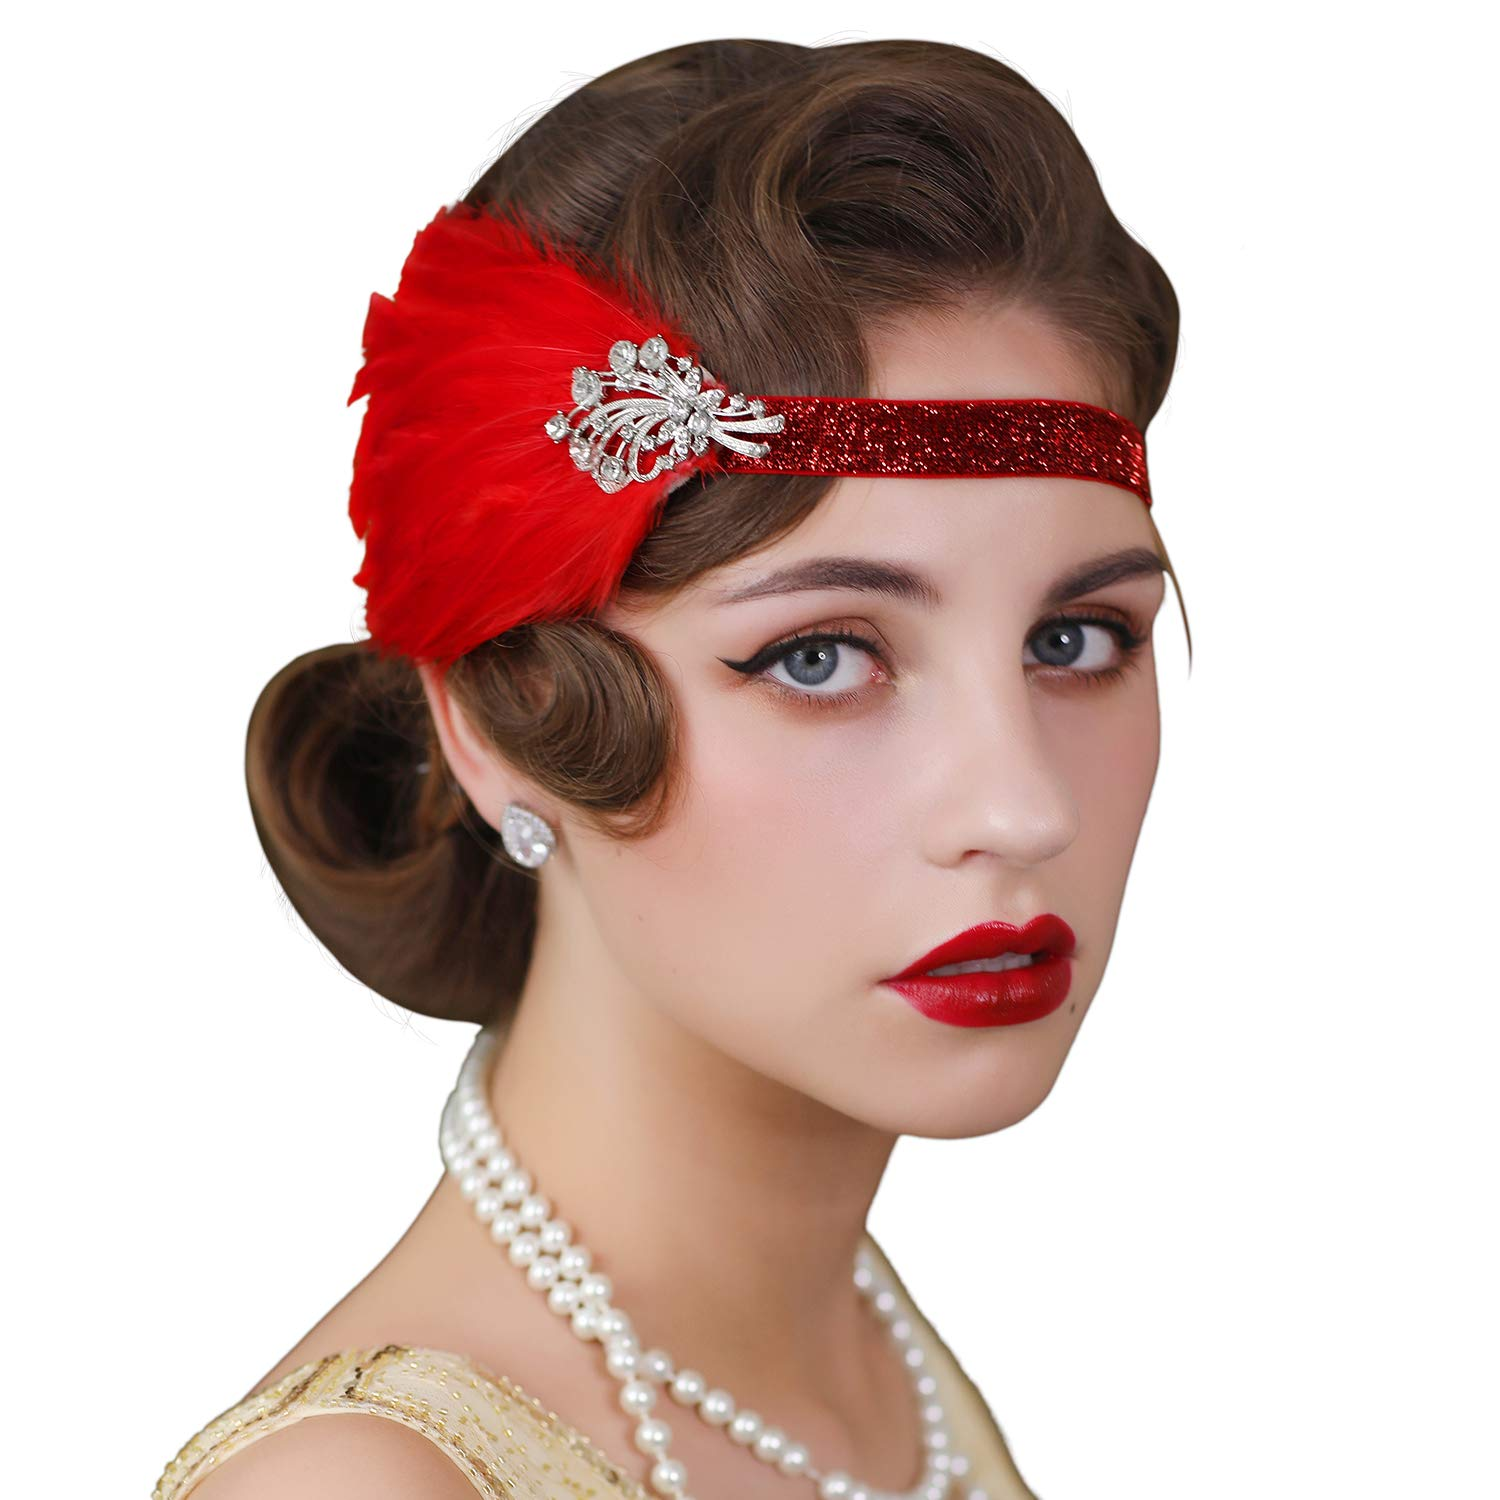 Sweetv 1920s Flapper Headband Feather Great Gatsby Headpiece Roaring 20s Vintage Hair Accessories Red